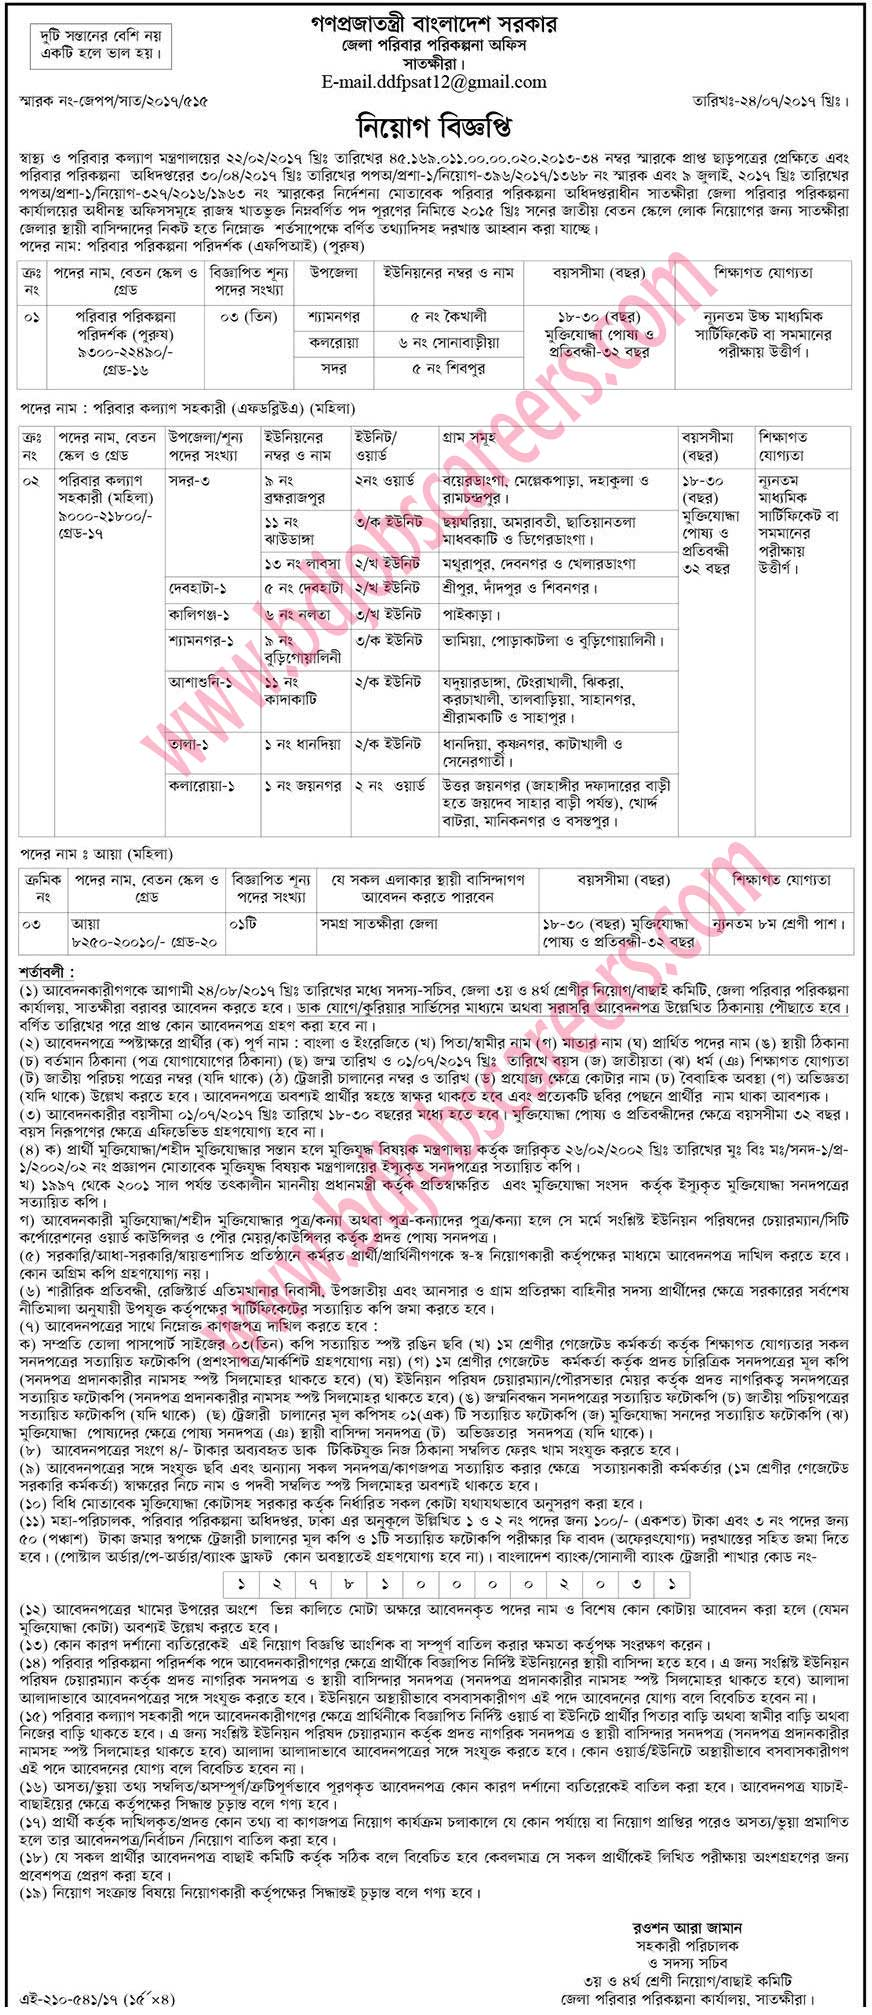 Satkhira District Family Planning Office Job Circular 2017